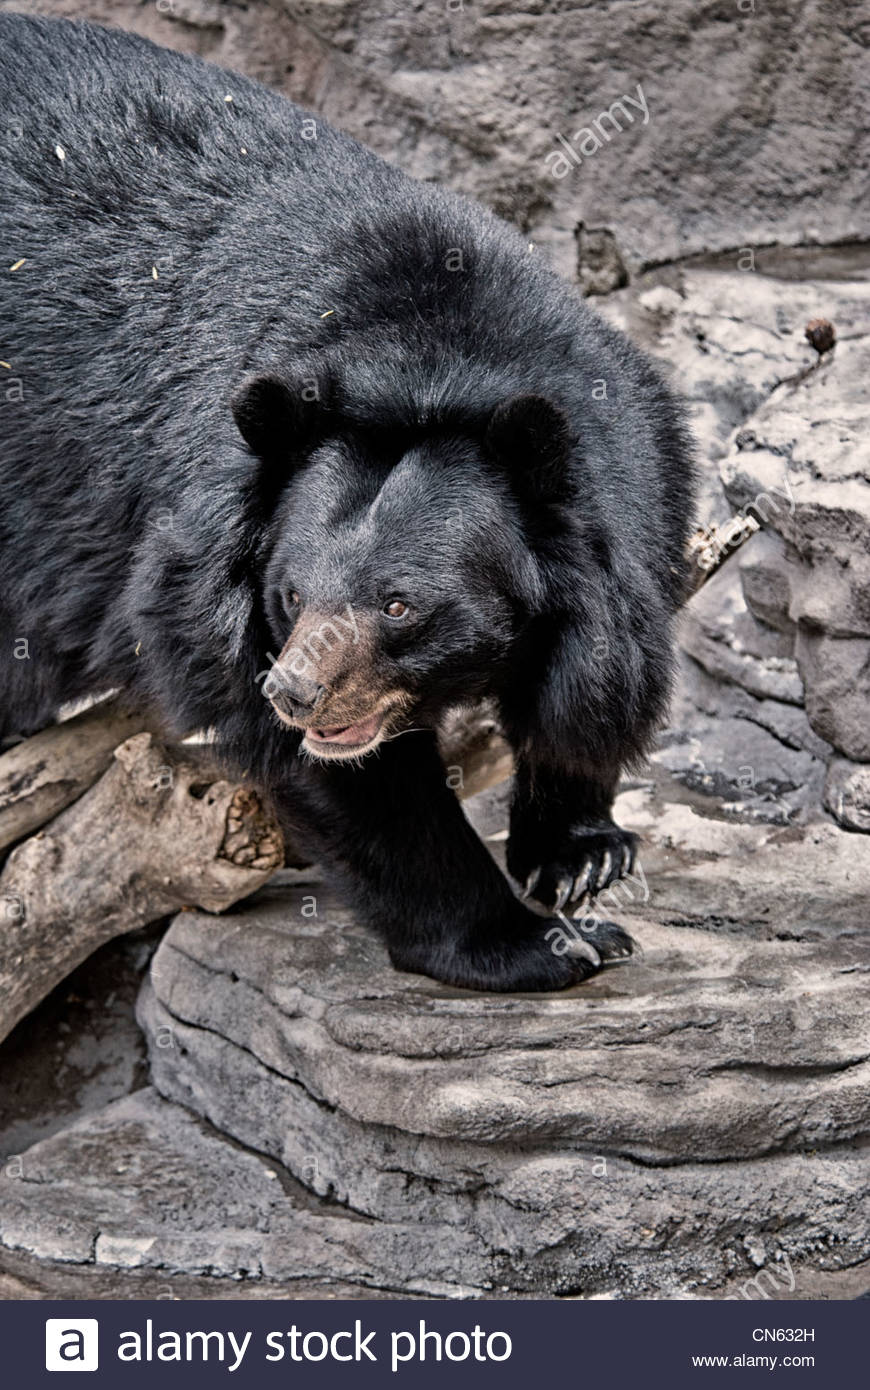 Asiatic Black Bear, Ursus thibetanus,  Denver Zoo, Denver, Colorado, USA - Stock Image